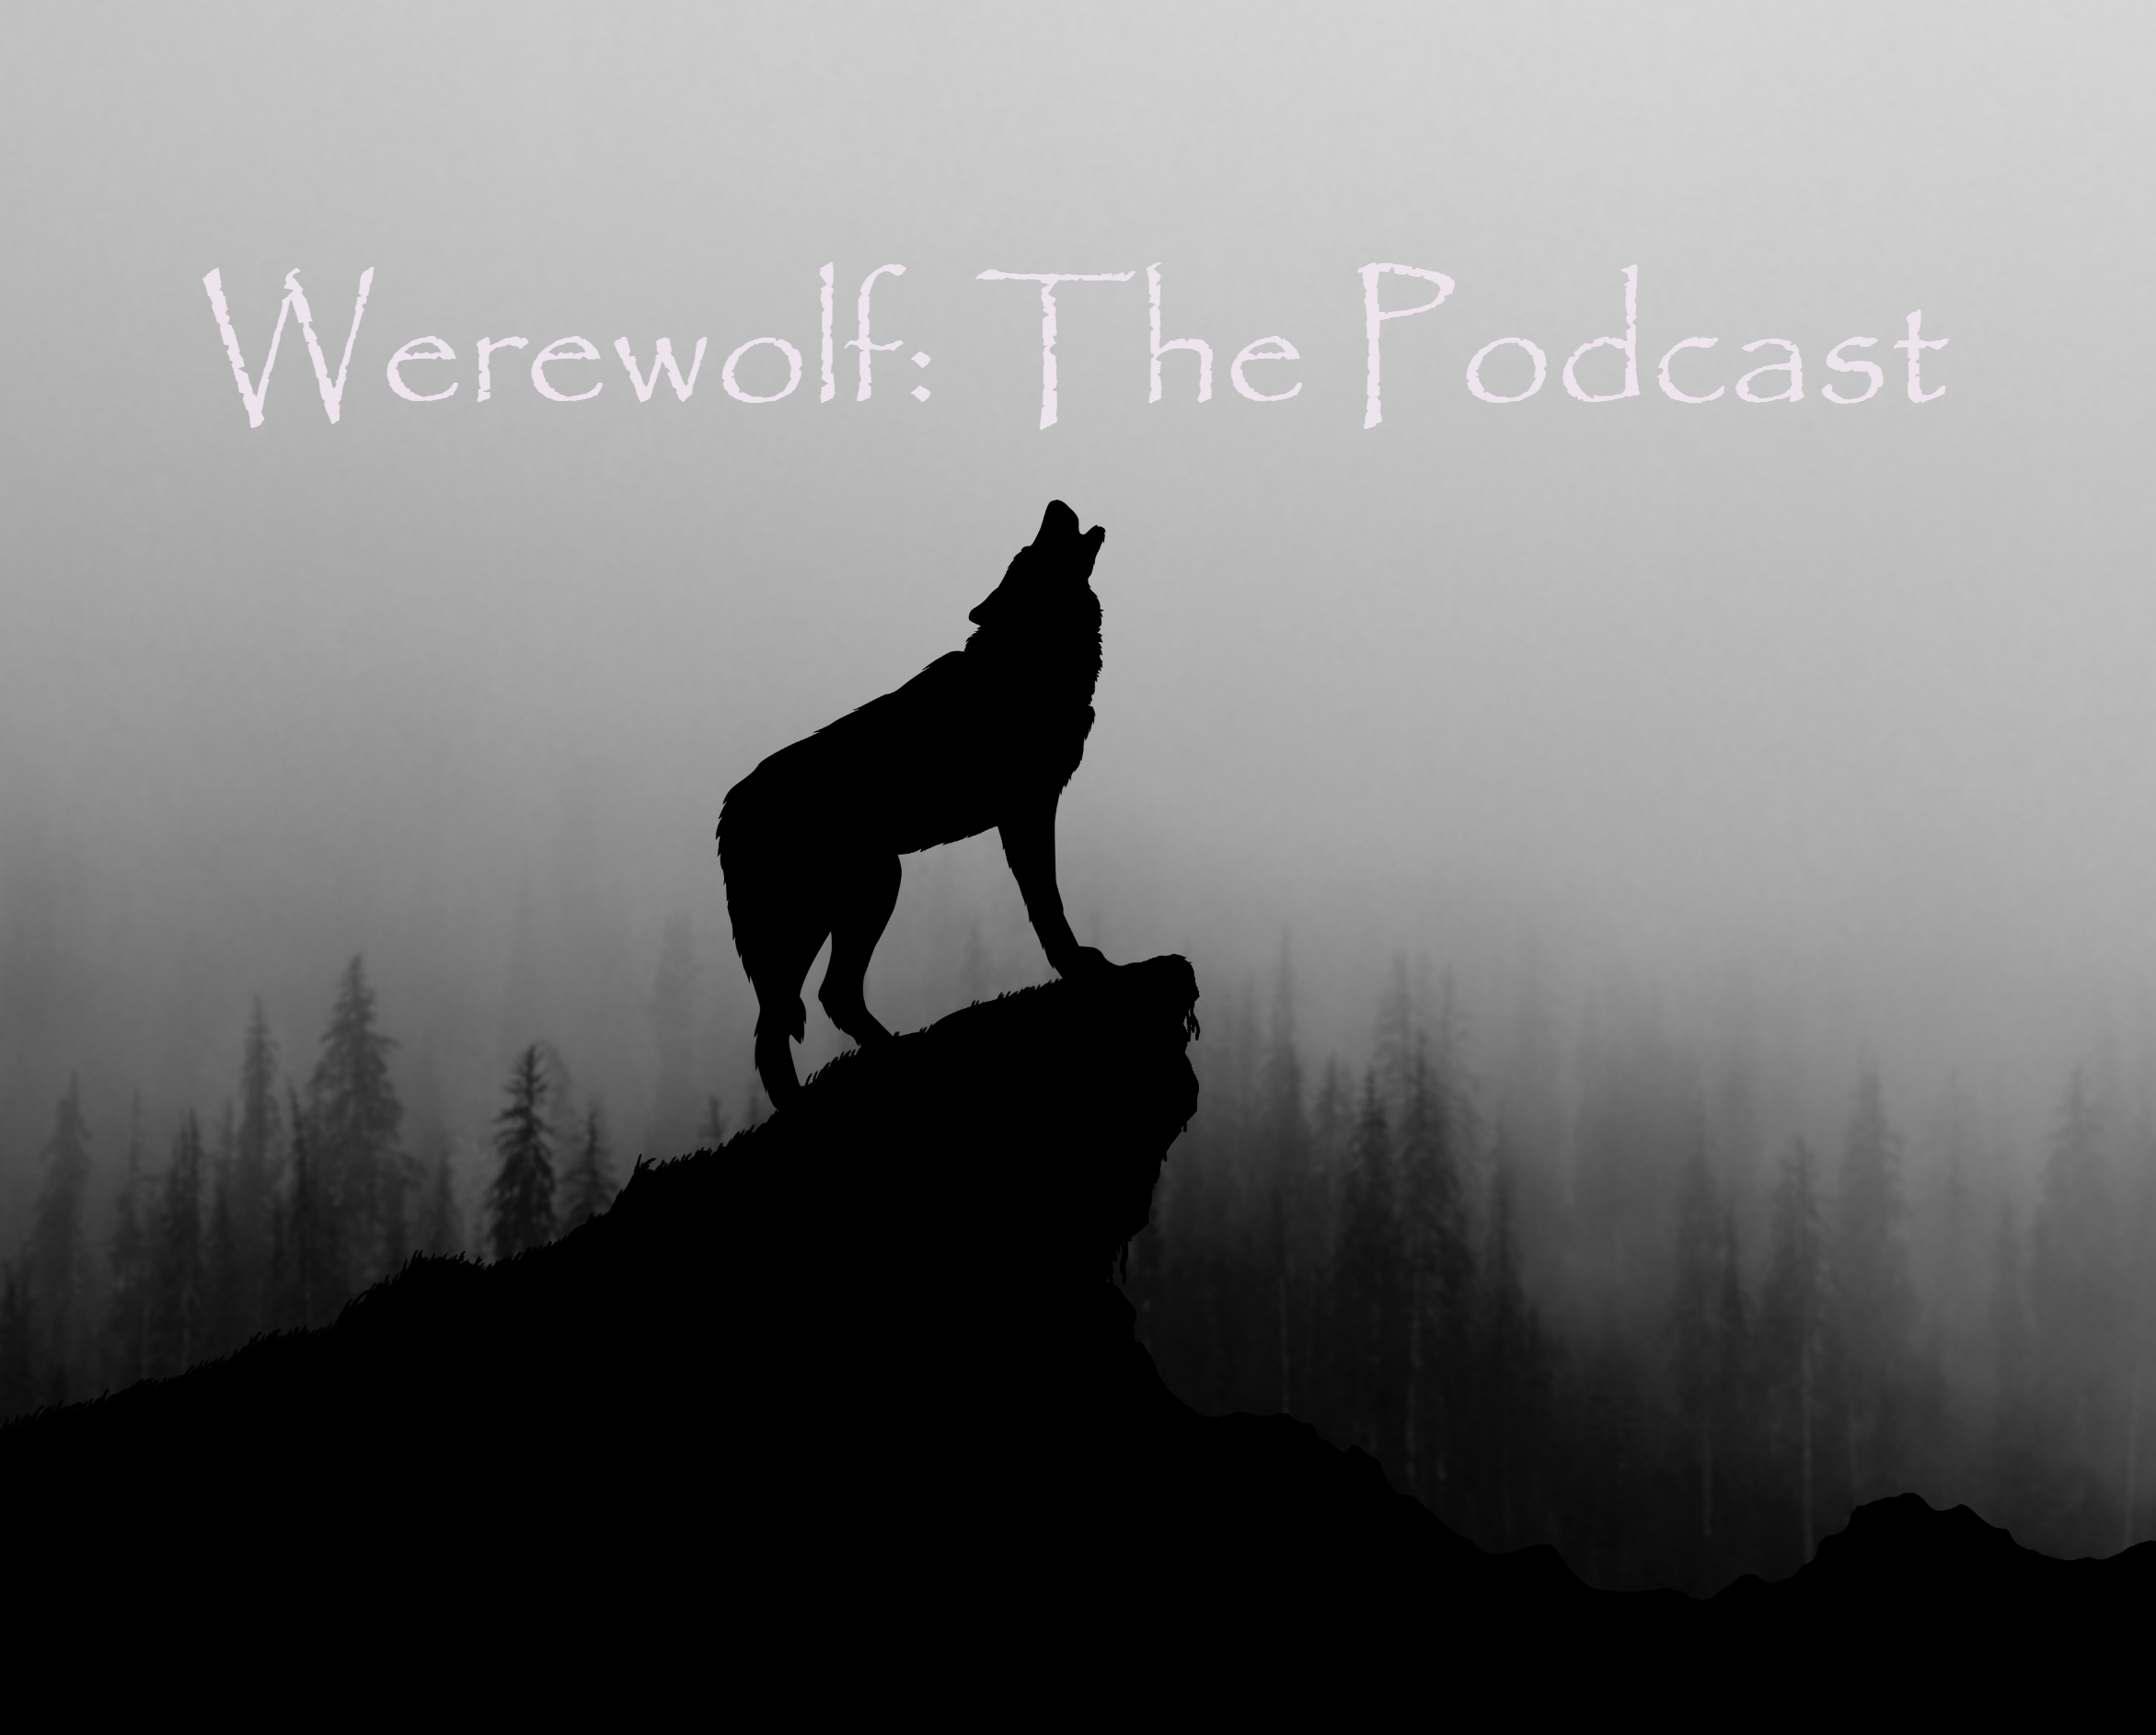 Werewolf: The Podcast